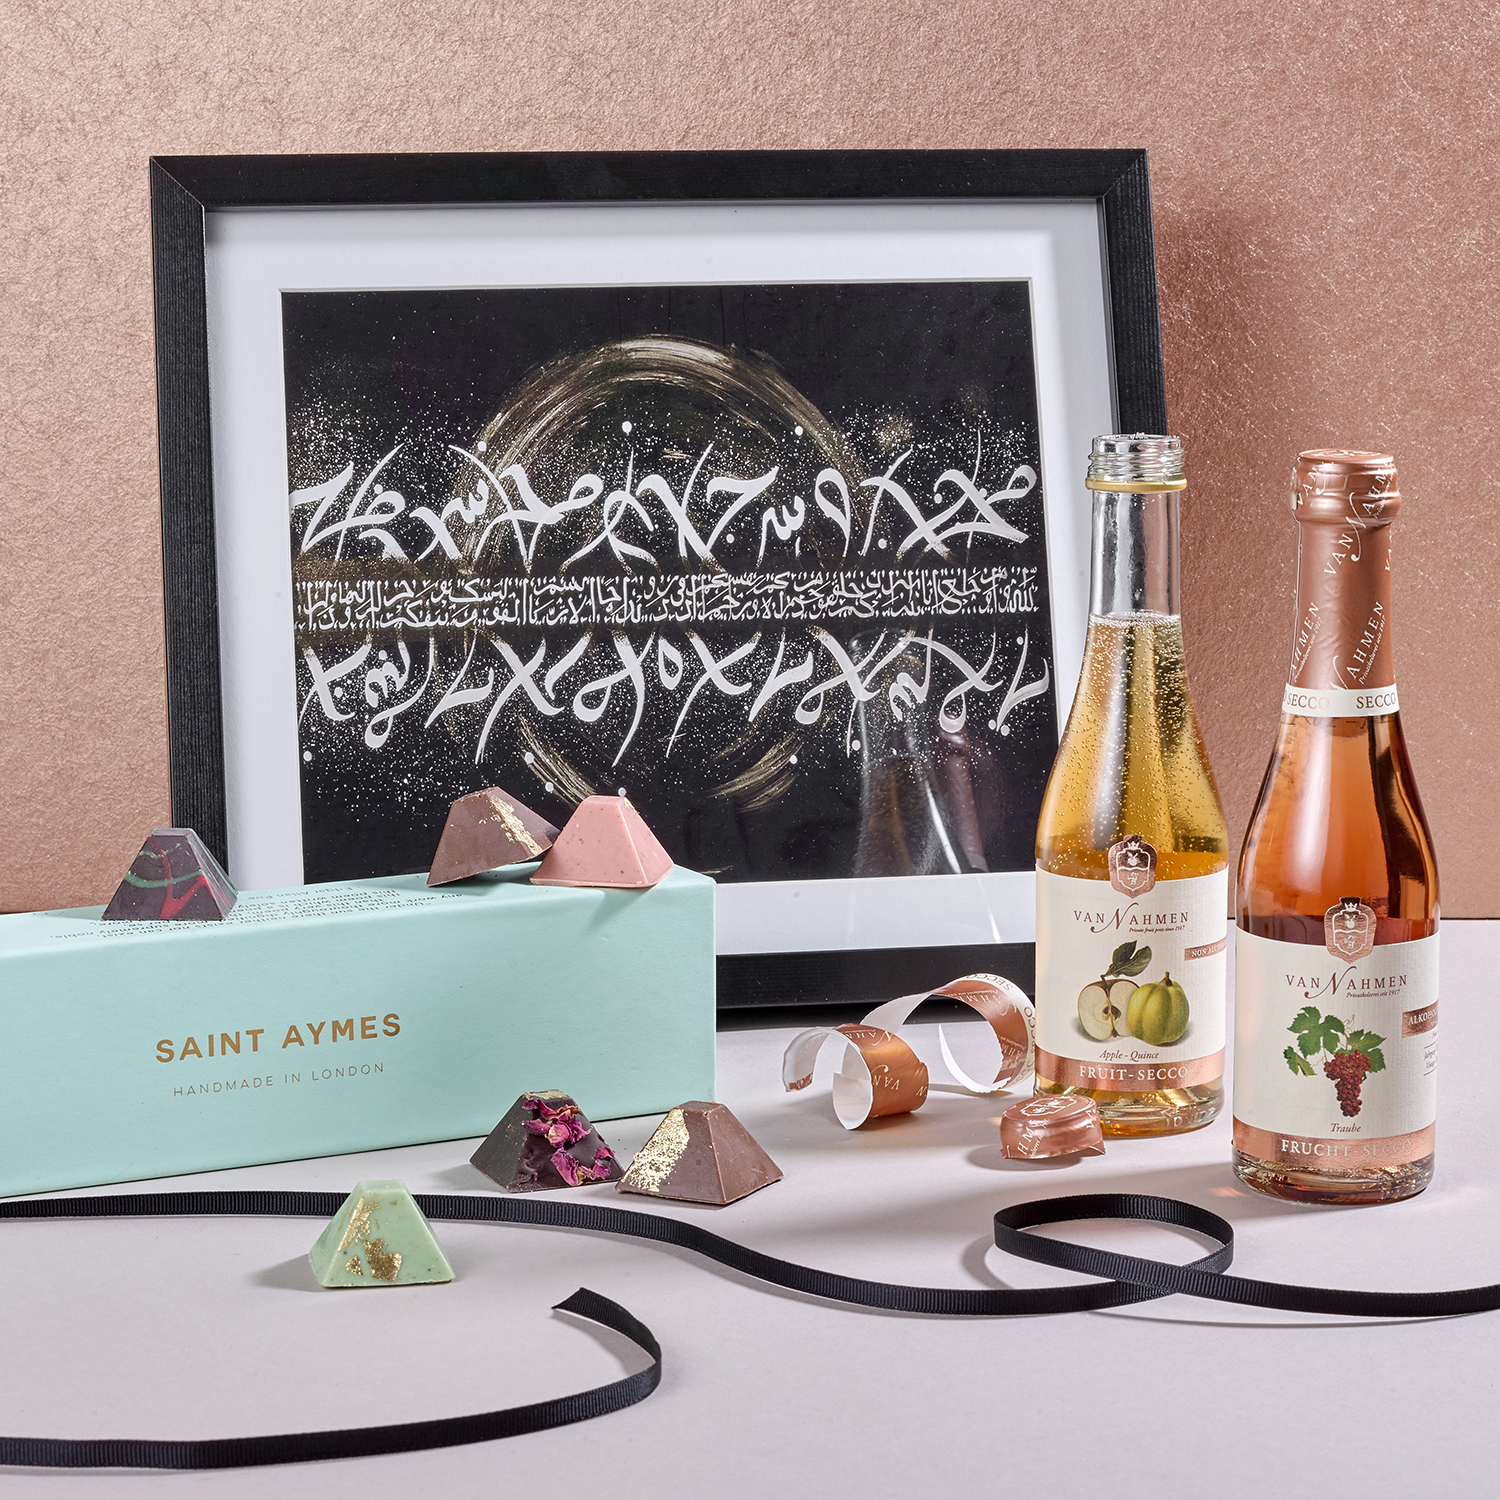 Food and drink product photography with lifestyle background, photographed in studio in London by creative photographer chris howlett